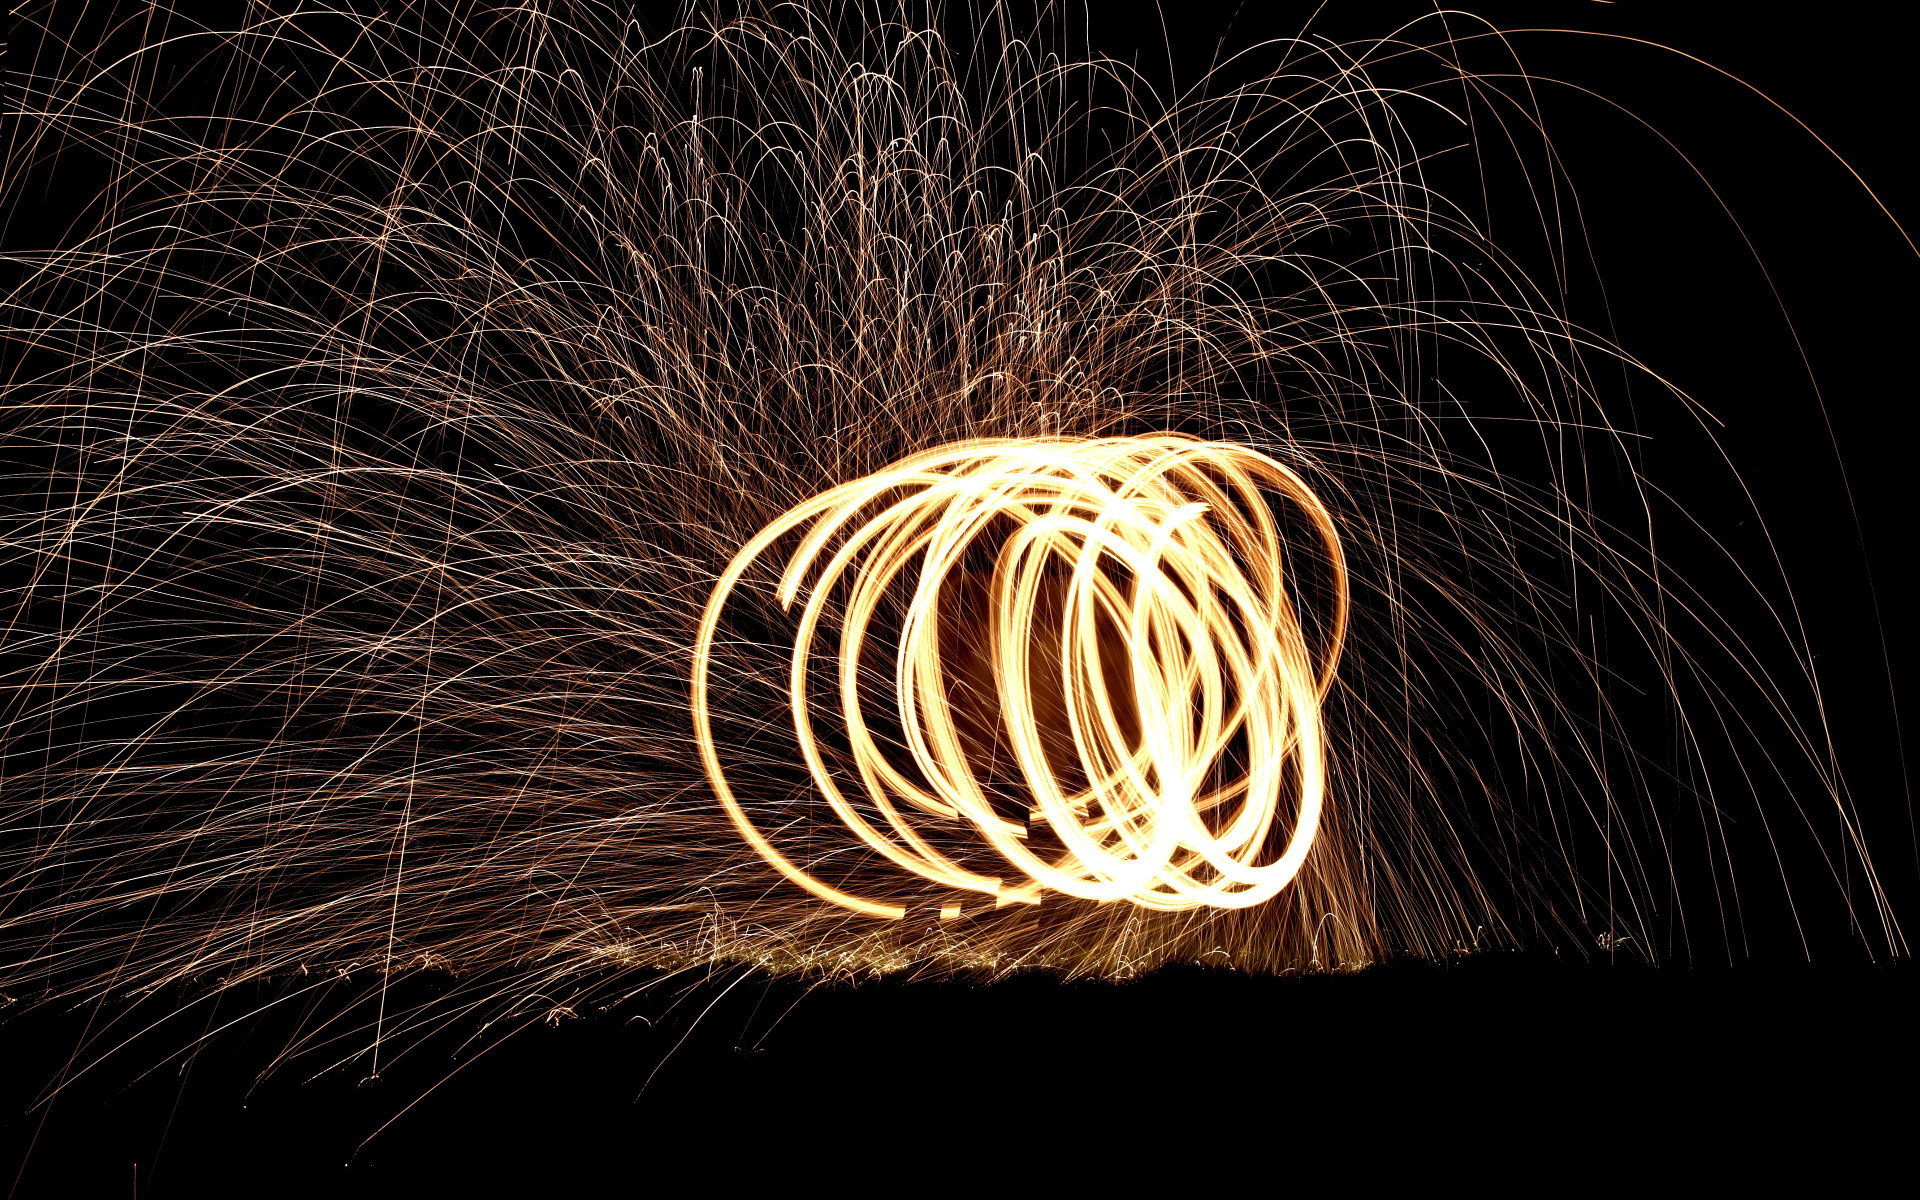 Spinning wire wool wallpaper 1920x1200